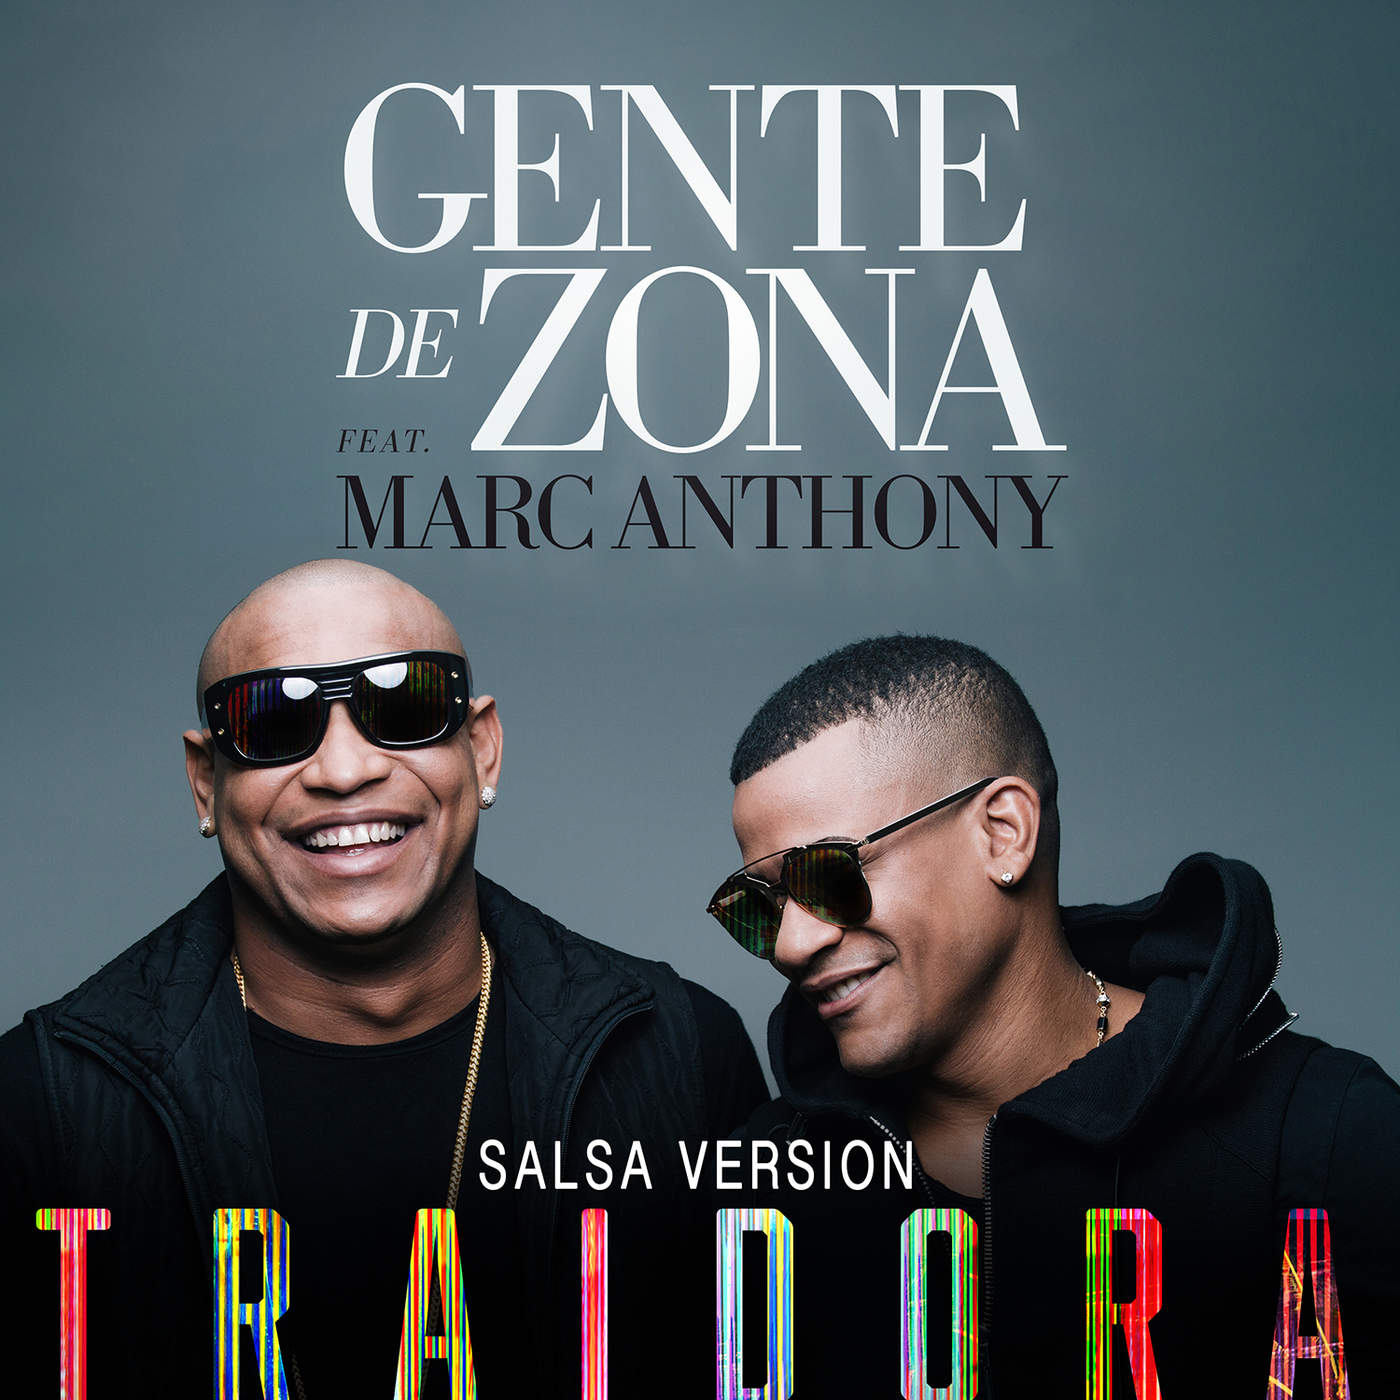 TRAIDORA (SALSA VERSION) - TRAIDORA (SALSA VERSION) – SINGLE